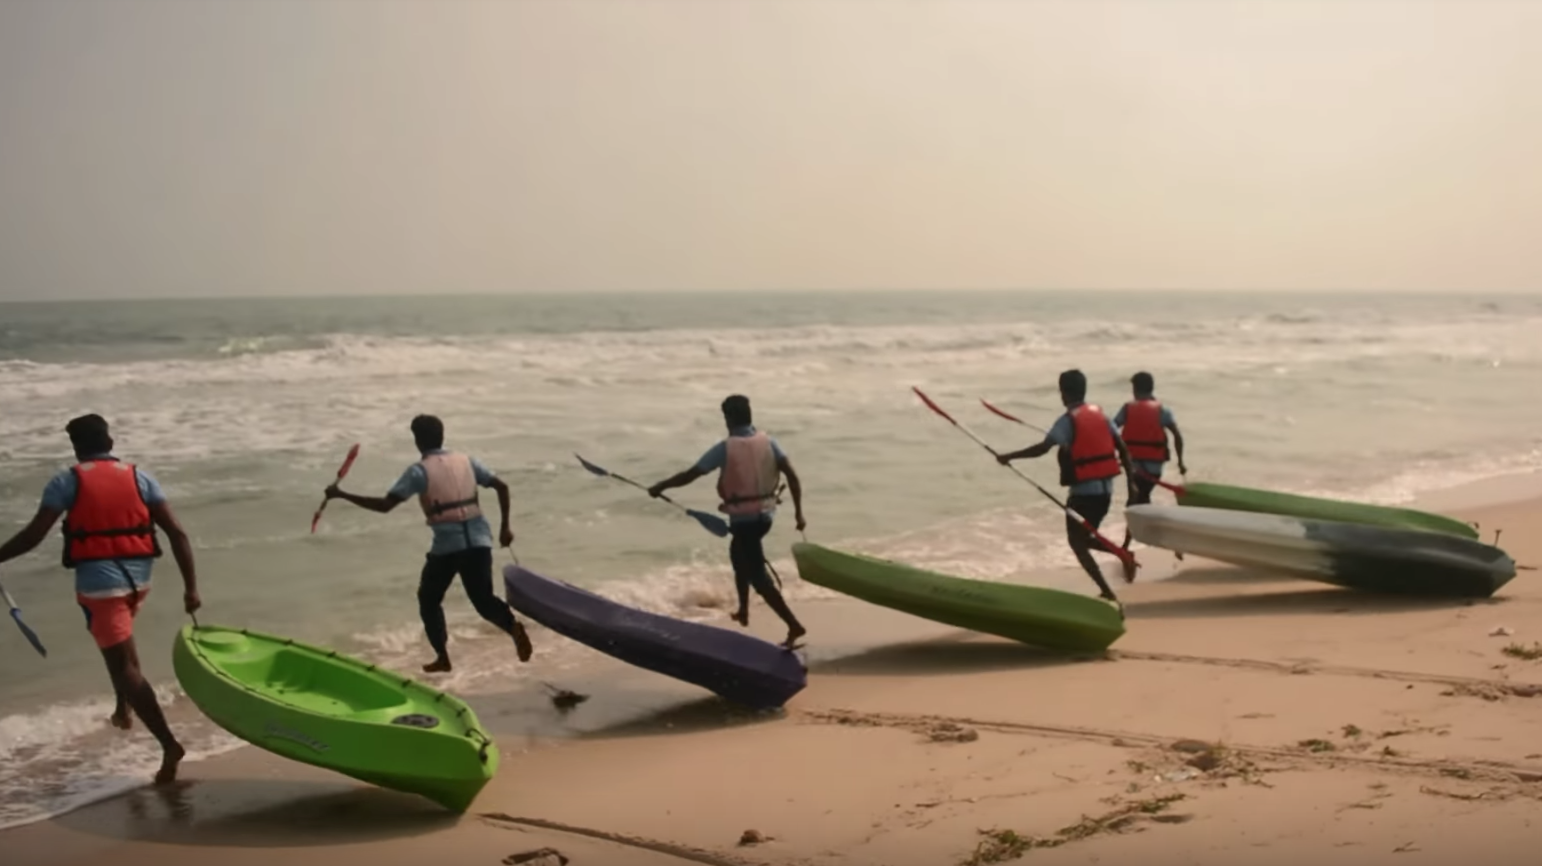 Younger fishers have started to diversify their sources of income, such as by training others in water-based adventure sports. Source: YouTube